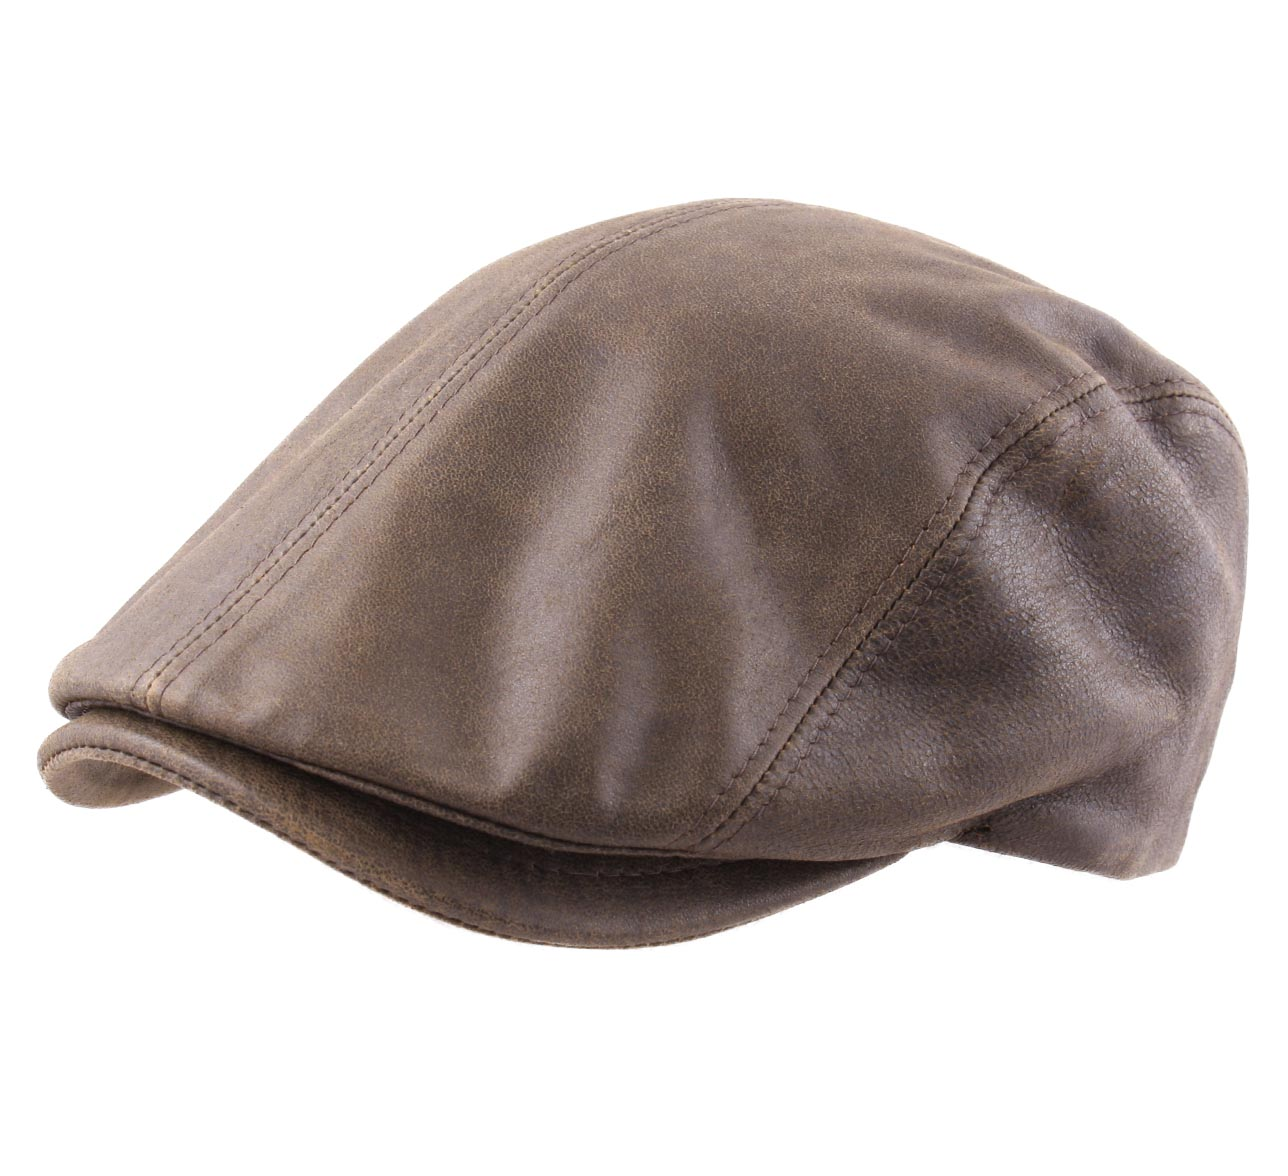 389ba4b01059a Beret-hat-flat-leather-man-or-woman-country thumbnail